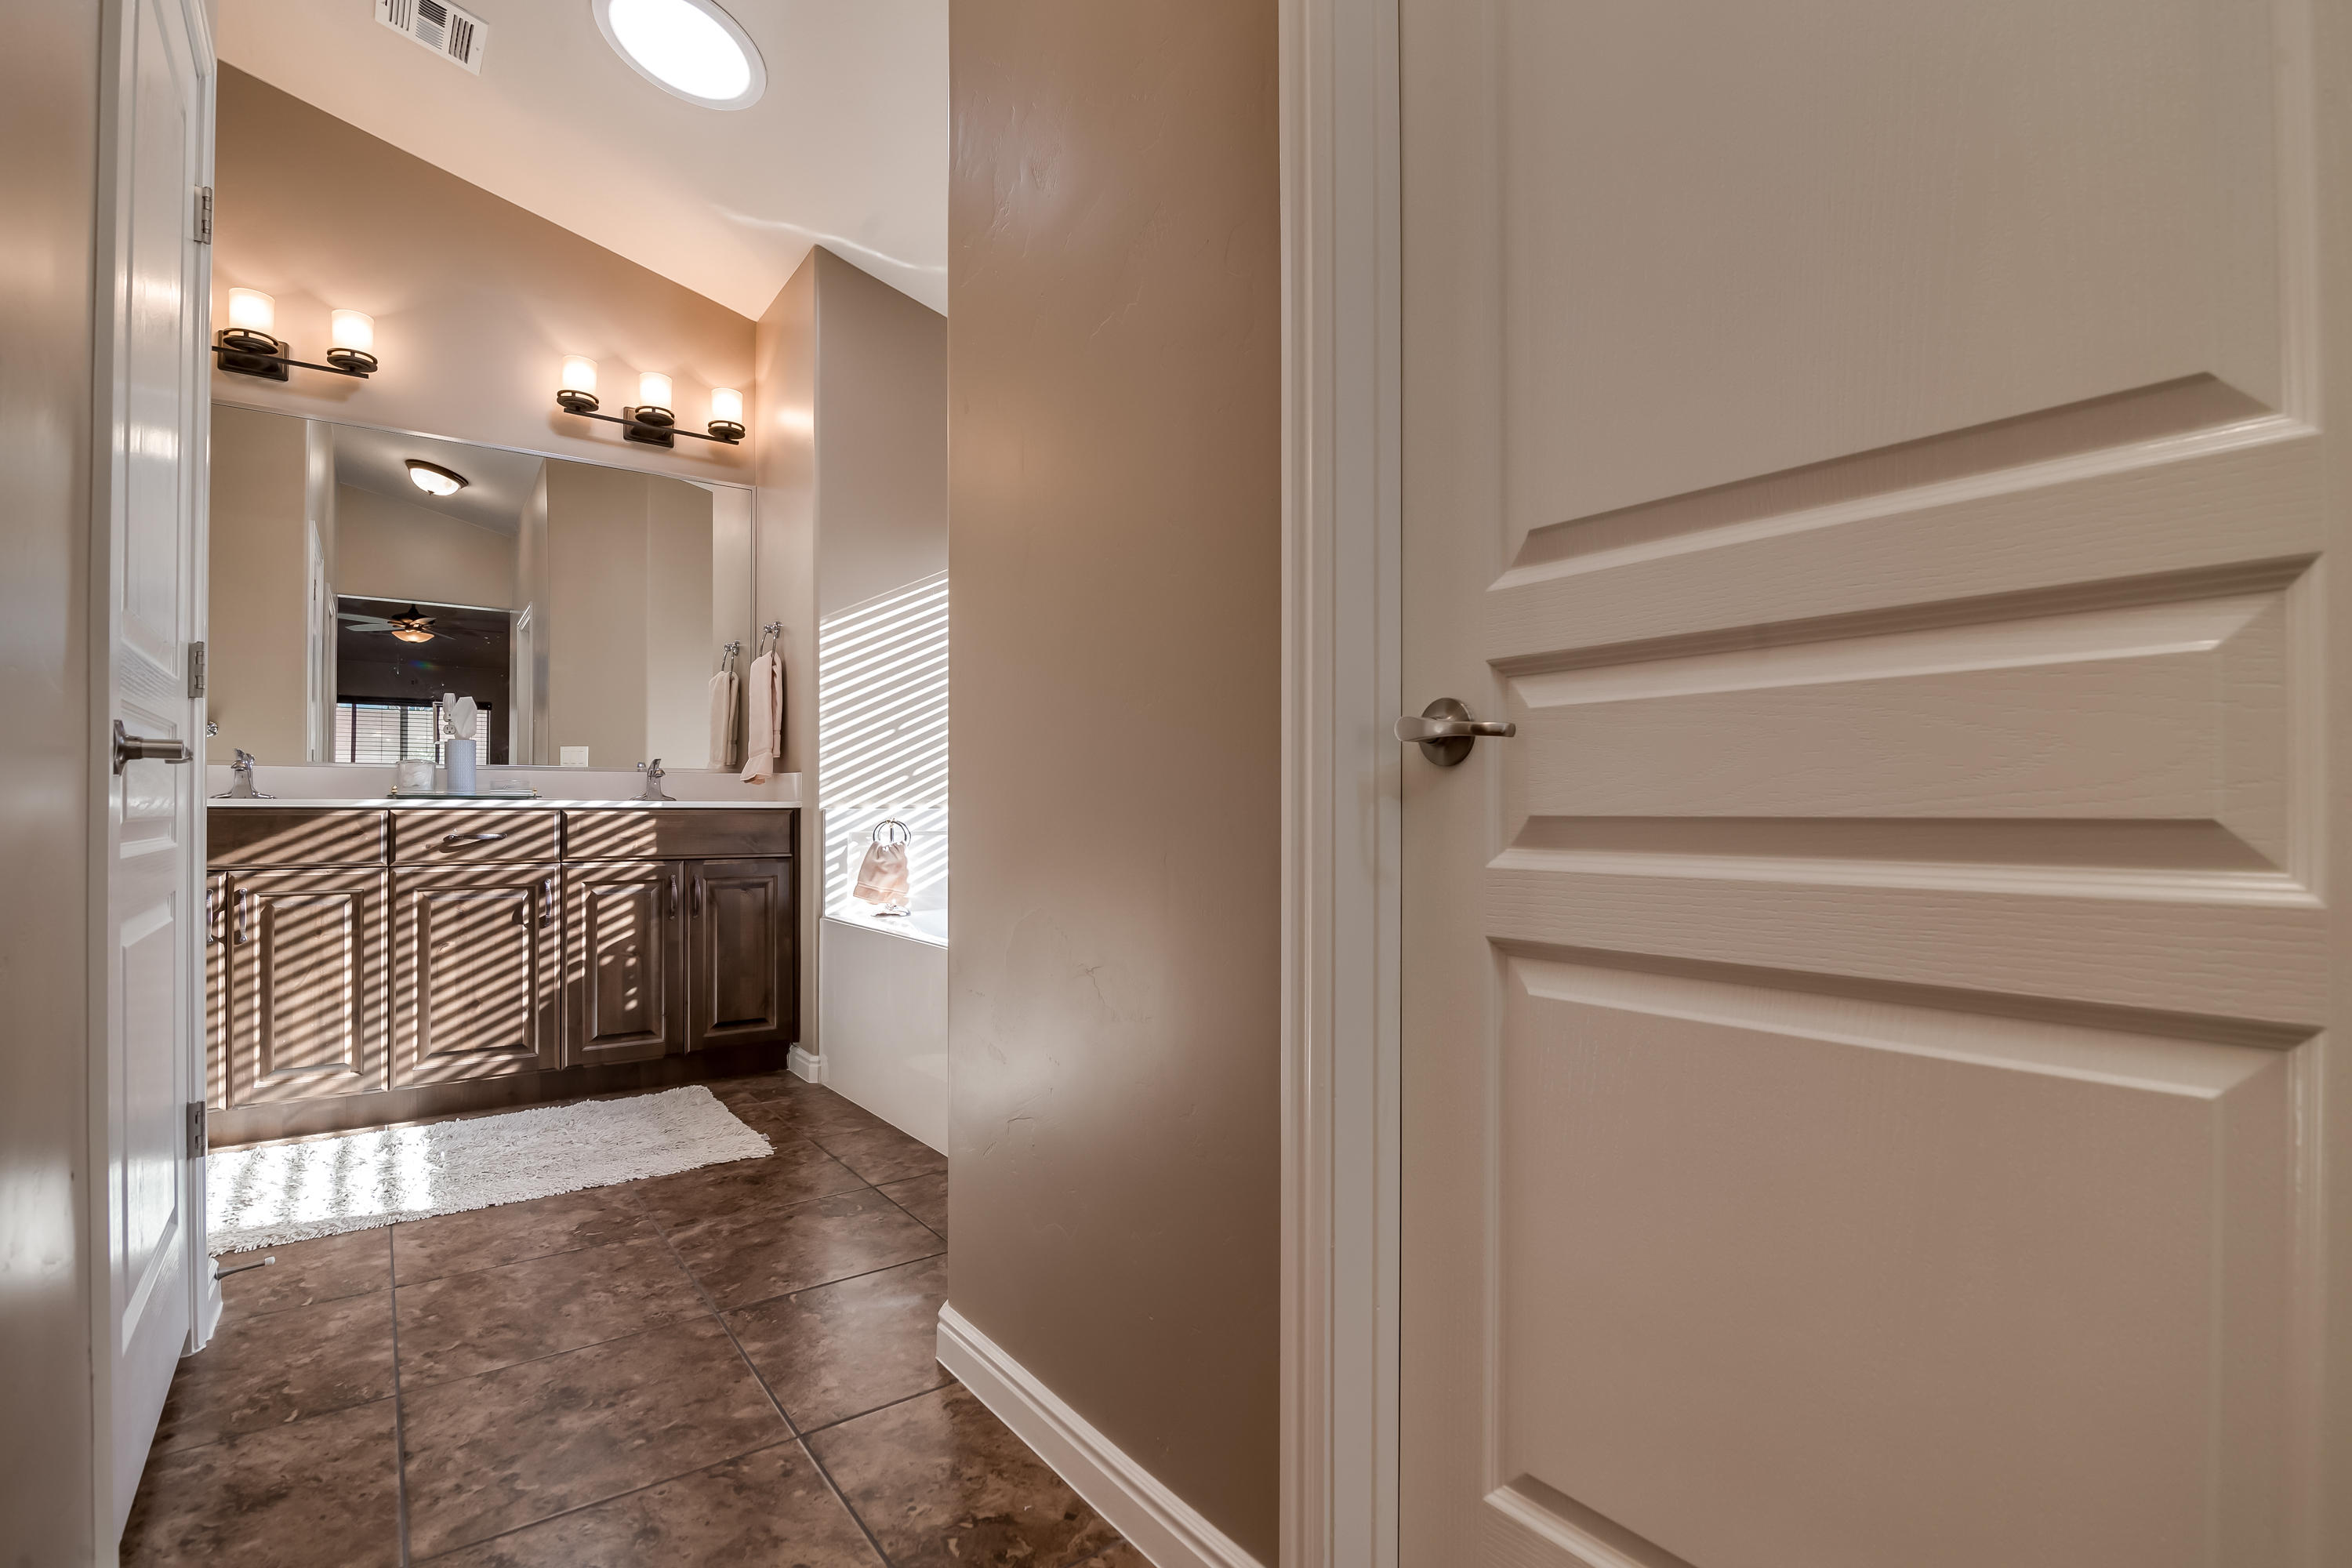 Peachy Property Search 921 Las Colinas Dr St George Ut 84790 Home Remodeling Inspirations Propsscottssportslandcom